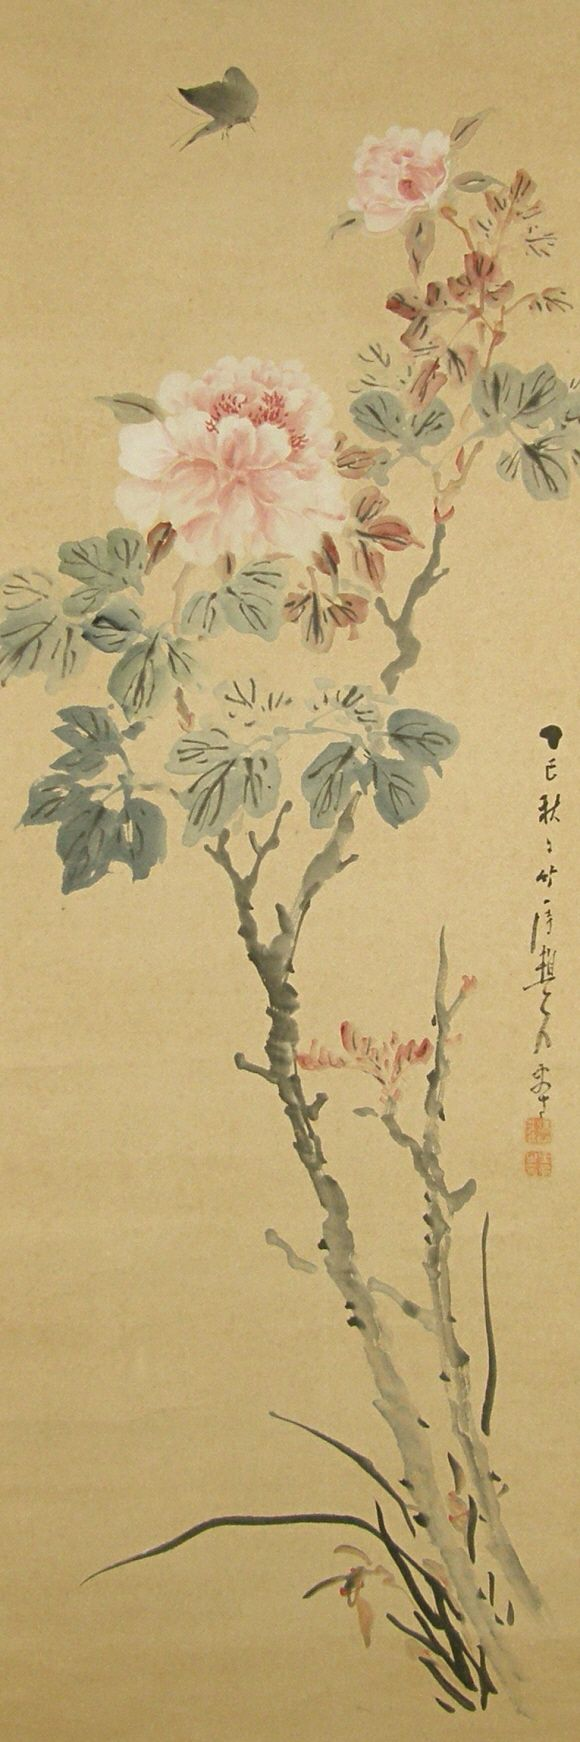 133 best paintings japanese images on pinterest for Japanese watercolor paintings